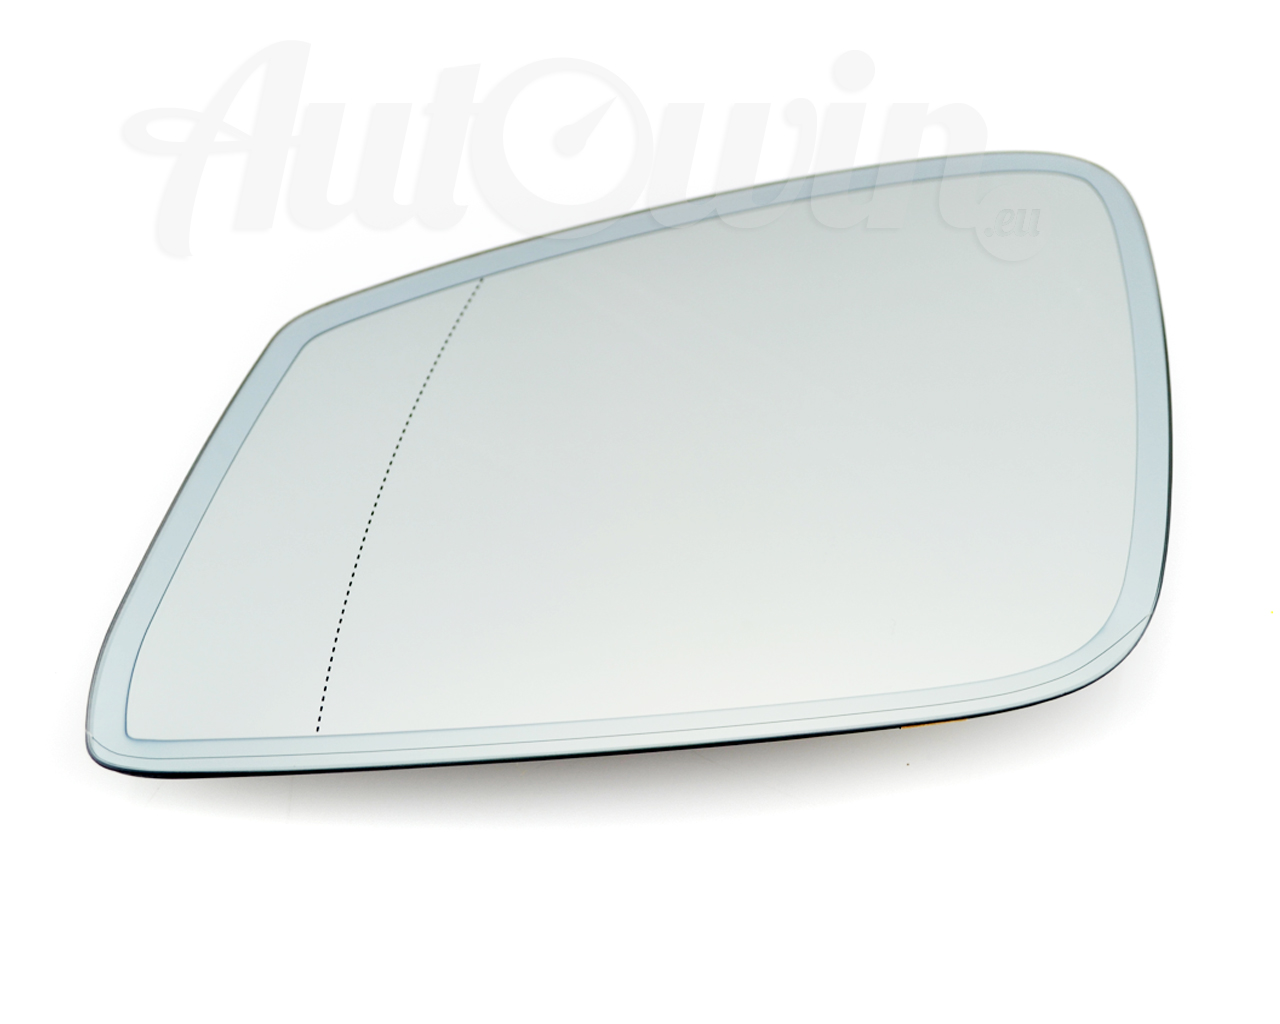 AUTO DIM FIT OVER NEW Mirror Glass 00-06 BMW X5 SUV Driver Left Side LH